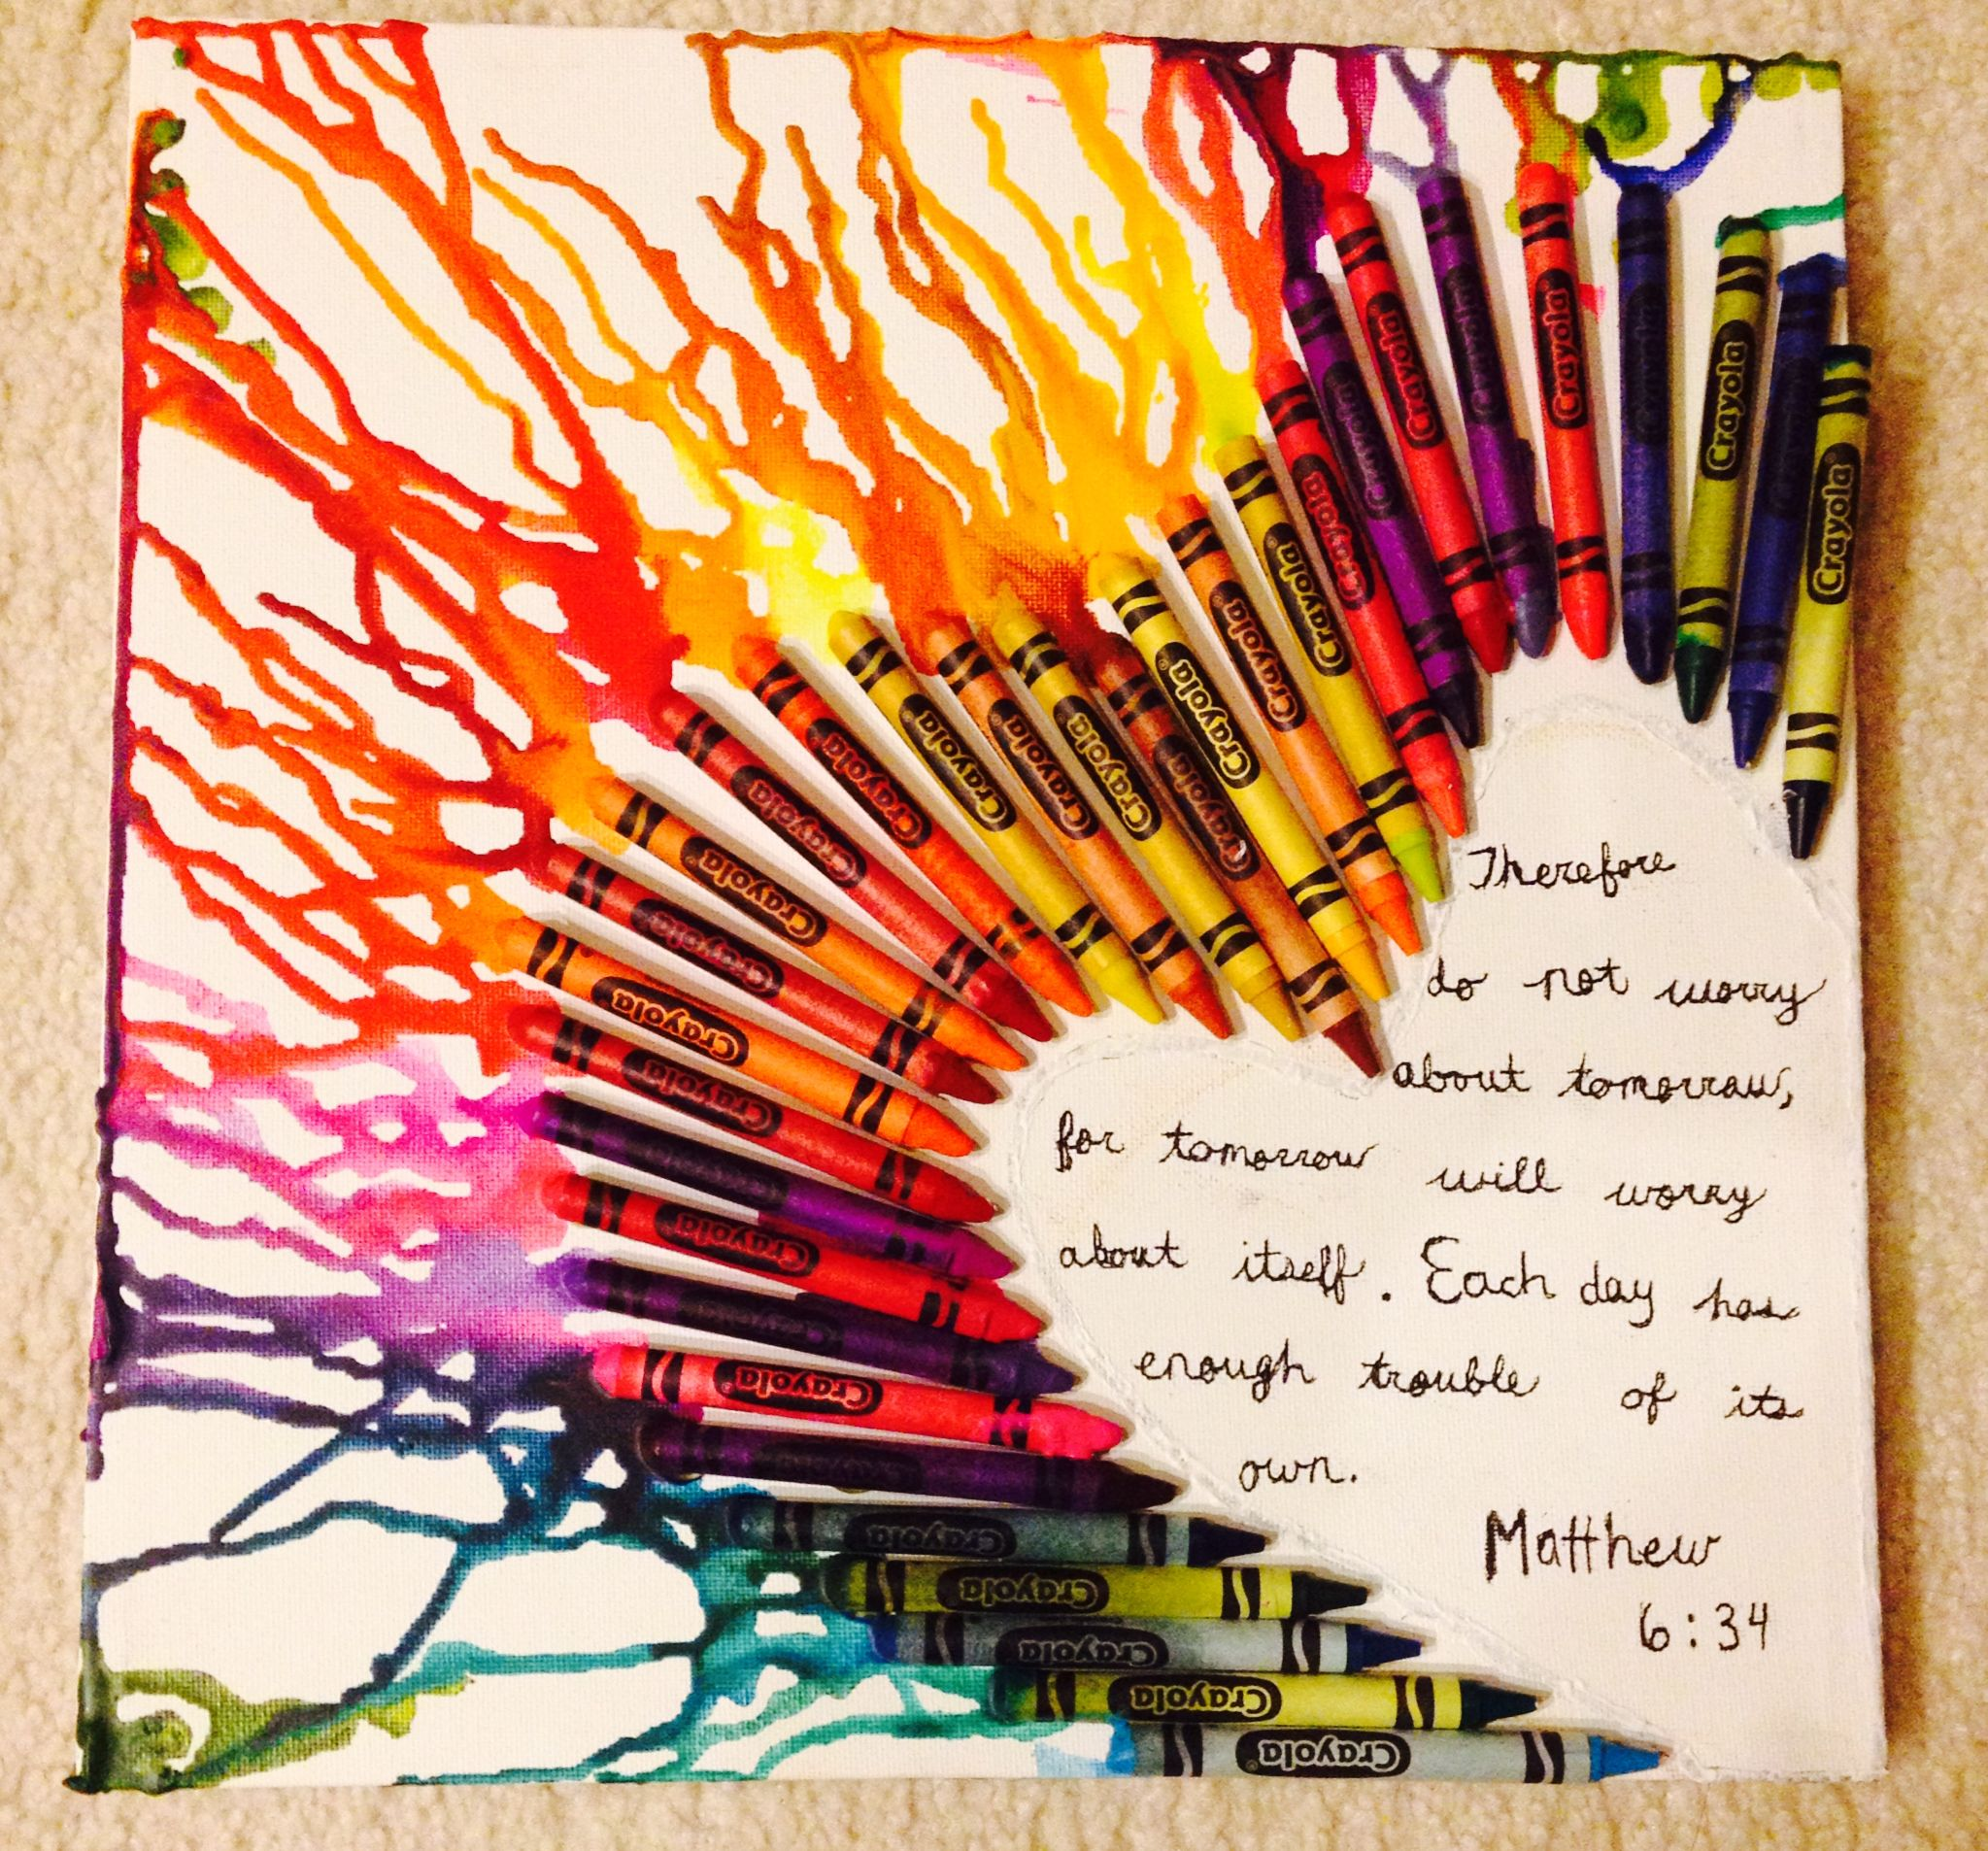 color crayon art : Diy Crayon On Canvas Art I Super Glued Crayons To The Canvas Then Blow